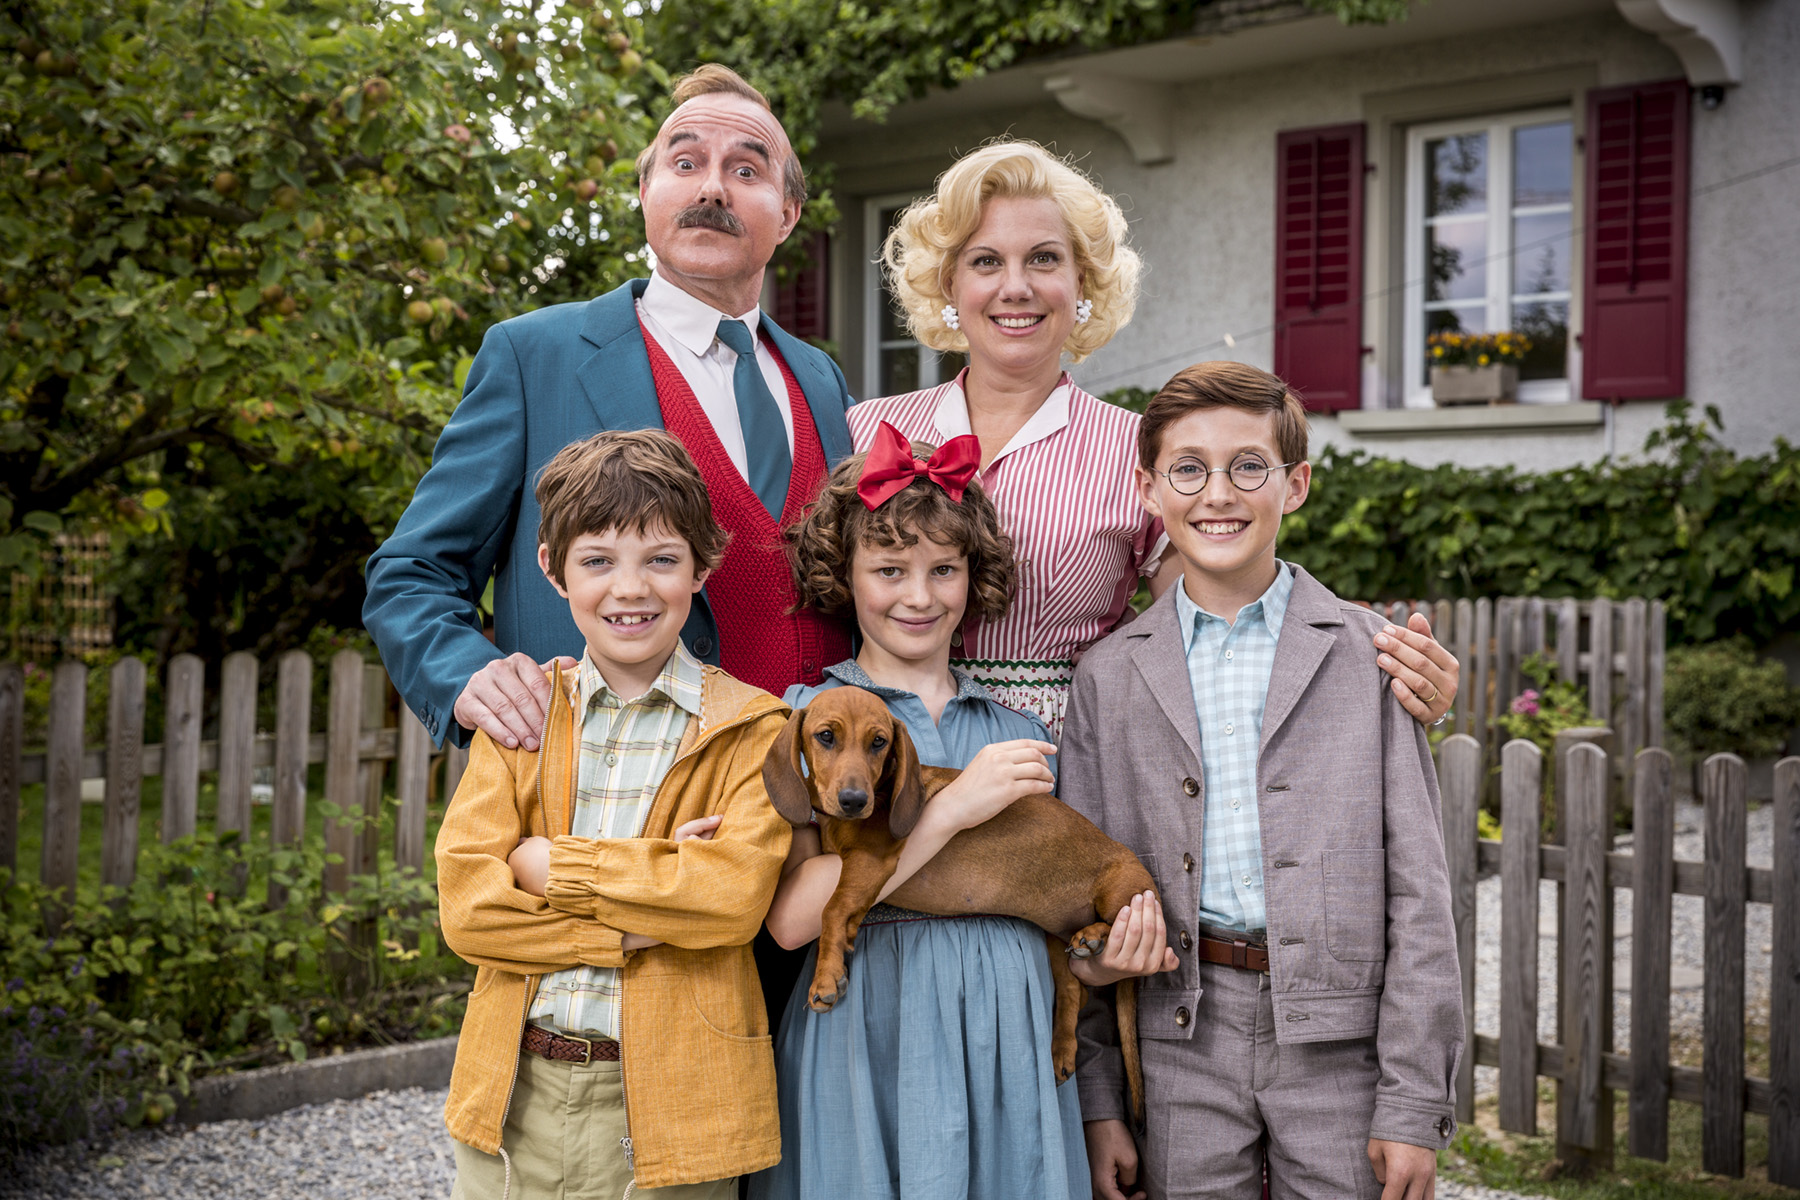 Familie Moll v.l.n.r.: Maxwell Mare (Fritz), Stefan Kurt (Papa Moll), Luna Paiano (Evi), Isabella Schmid (Mama Moll), Yven Hess (Willy), Copyright Zodiac Pictures / Pascal Mora